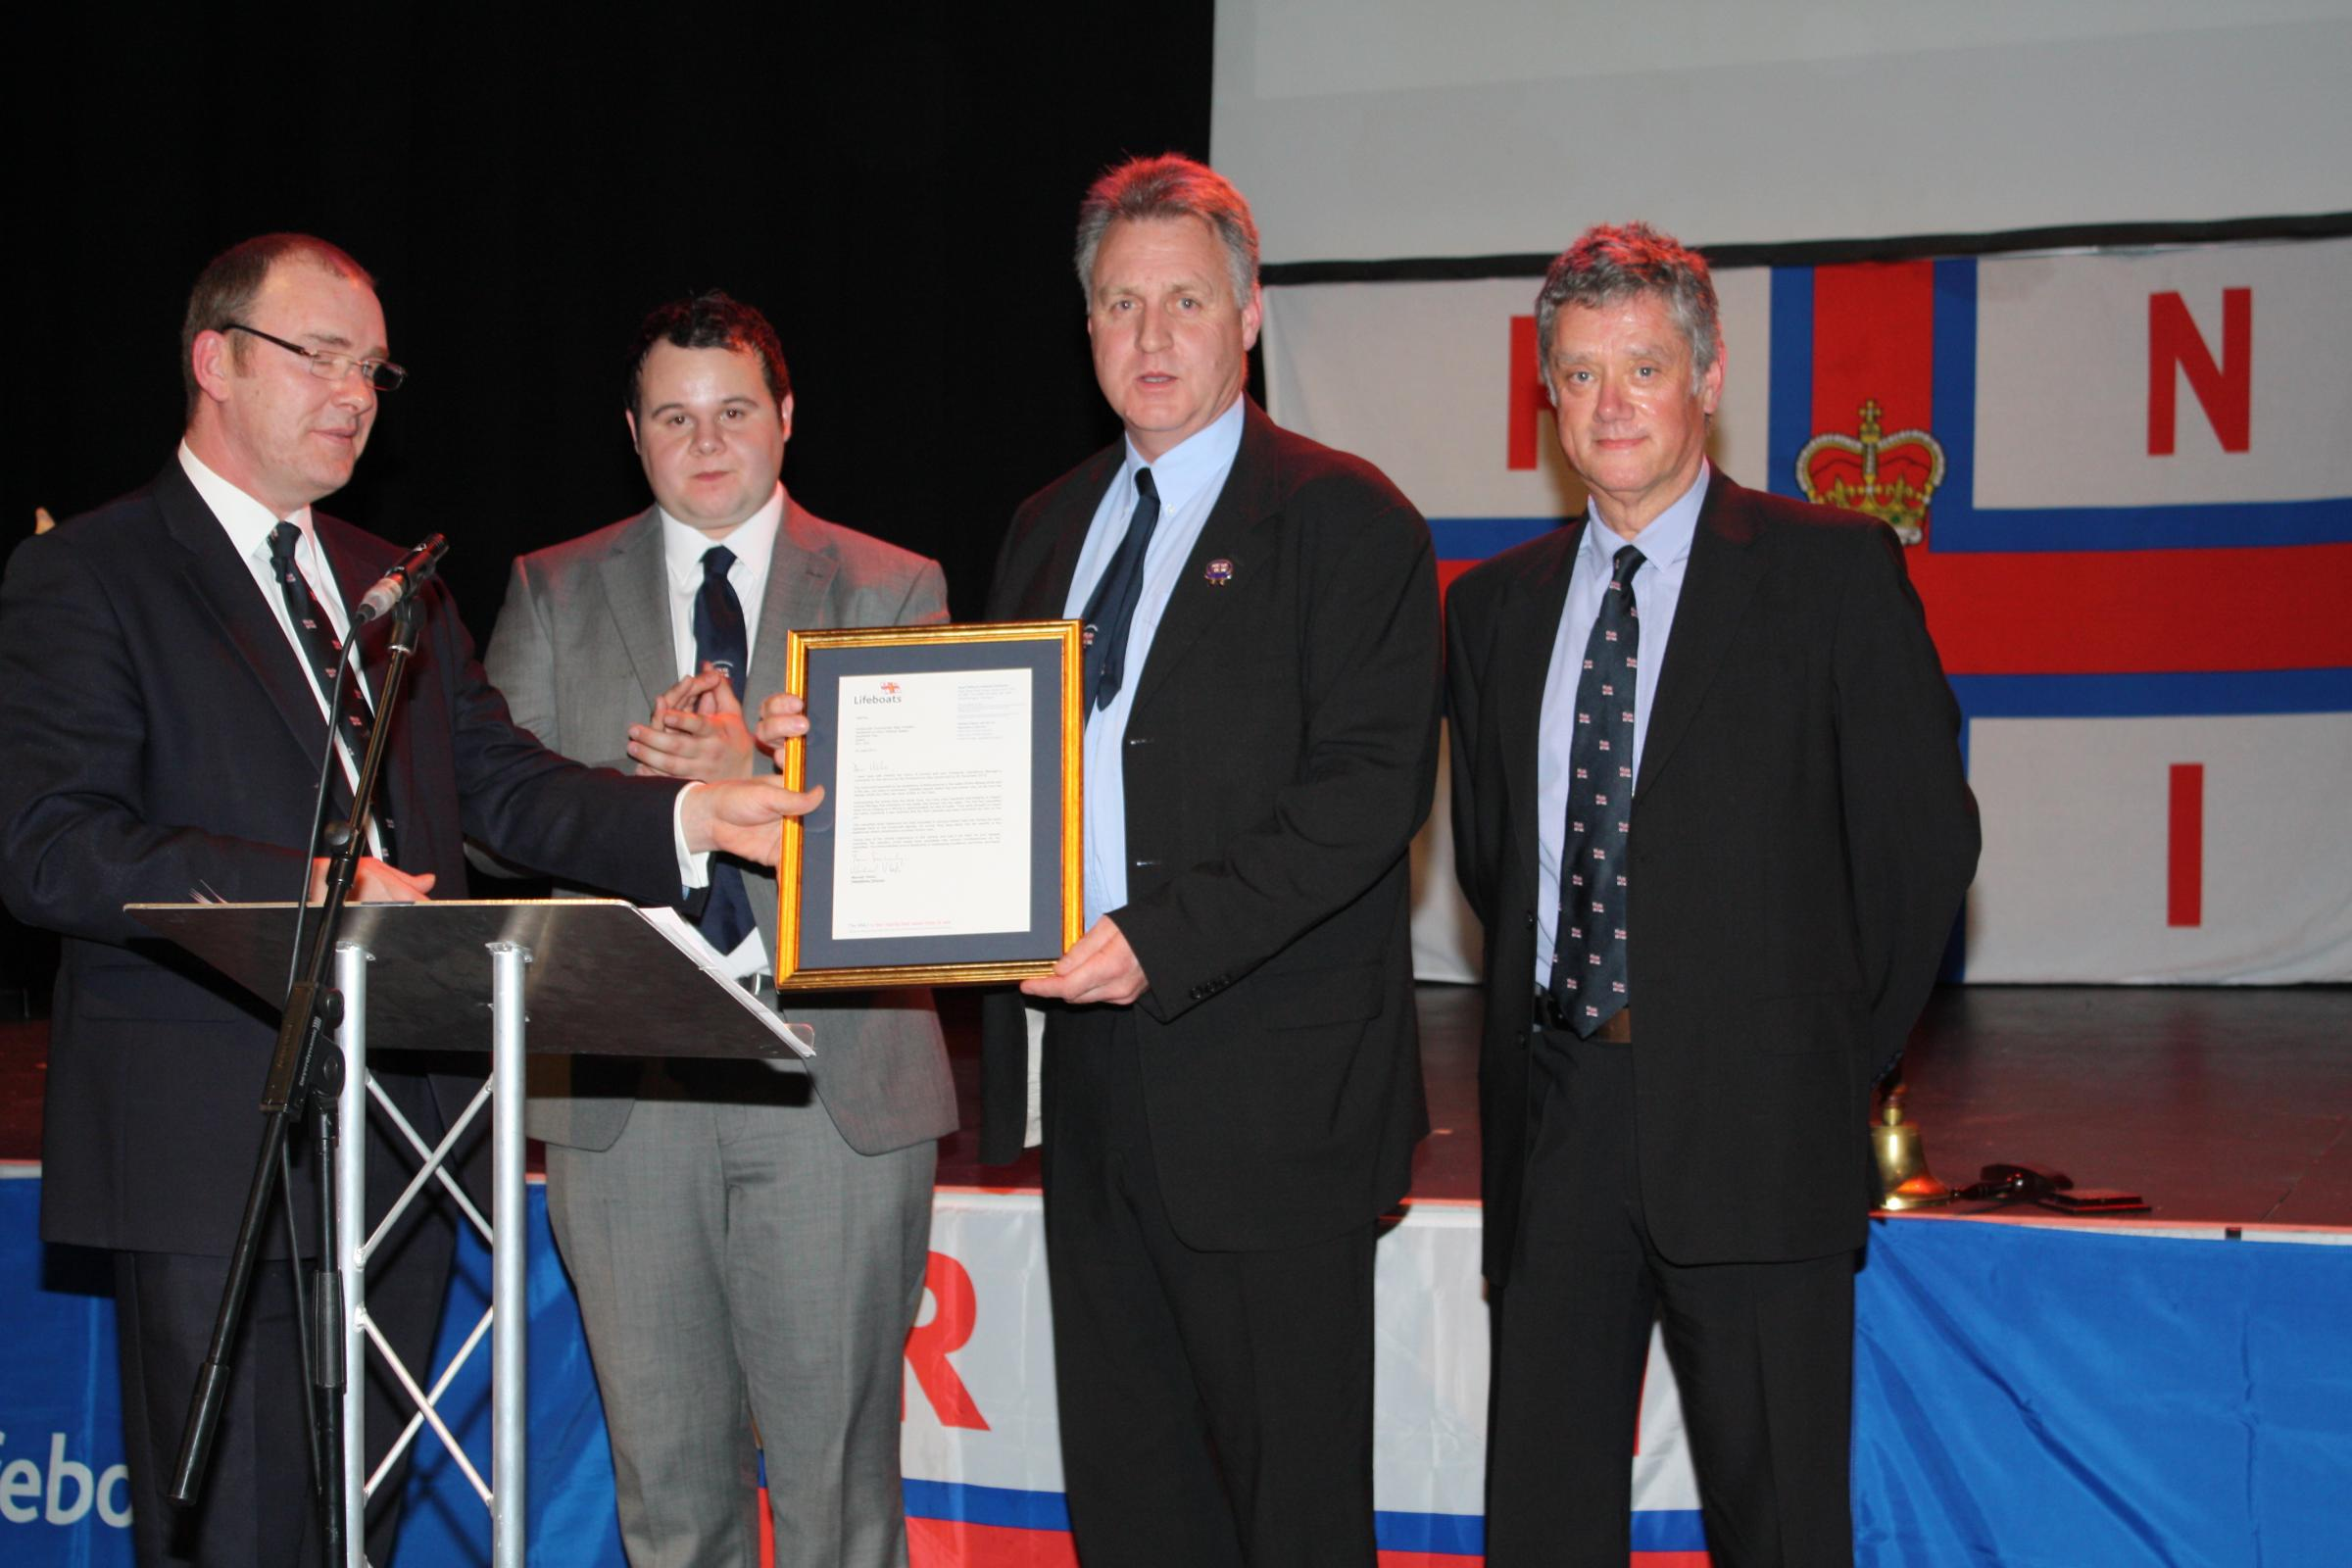 Commended - RNLI official David Shepherd presents the letter to Michael Whistler, Adam Manning and Dave Brown